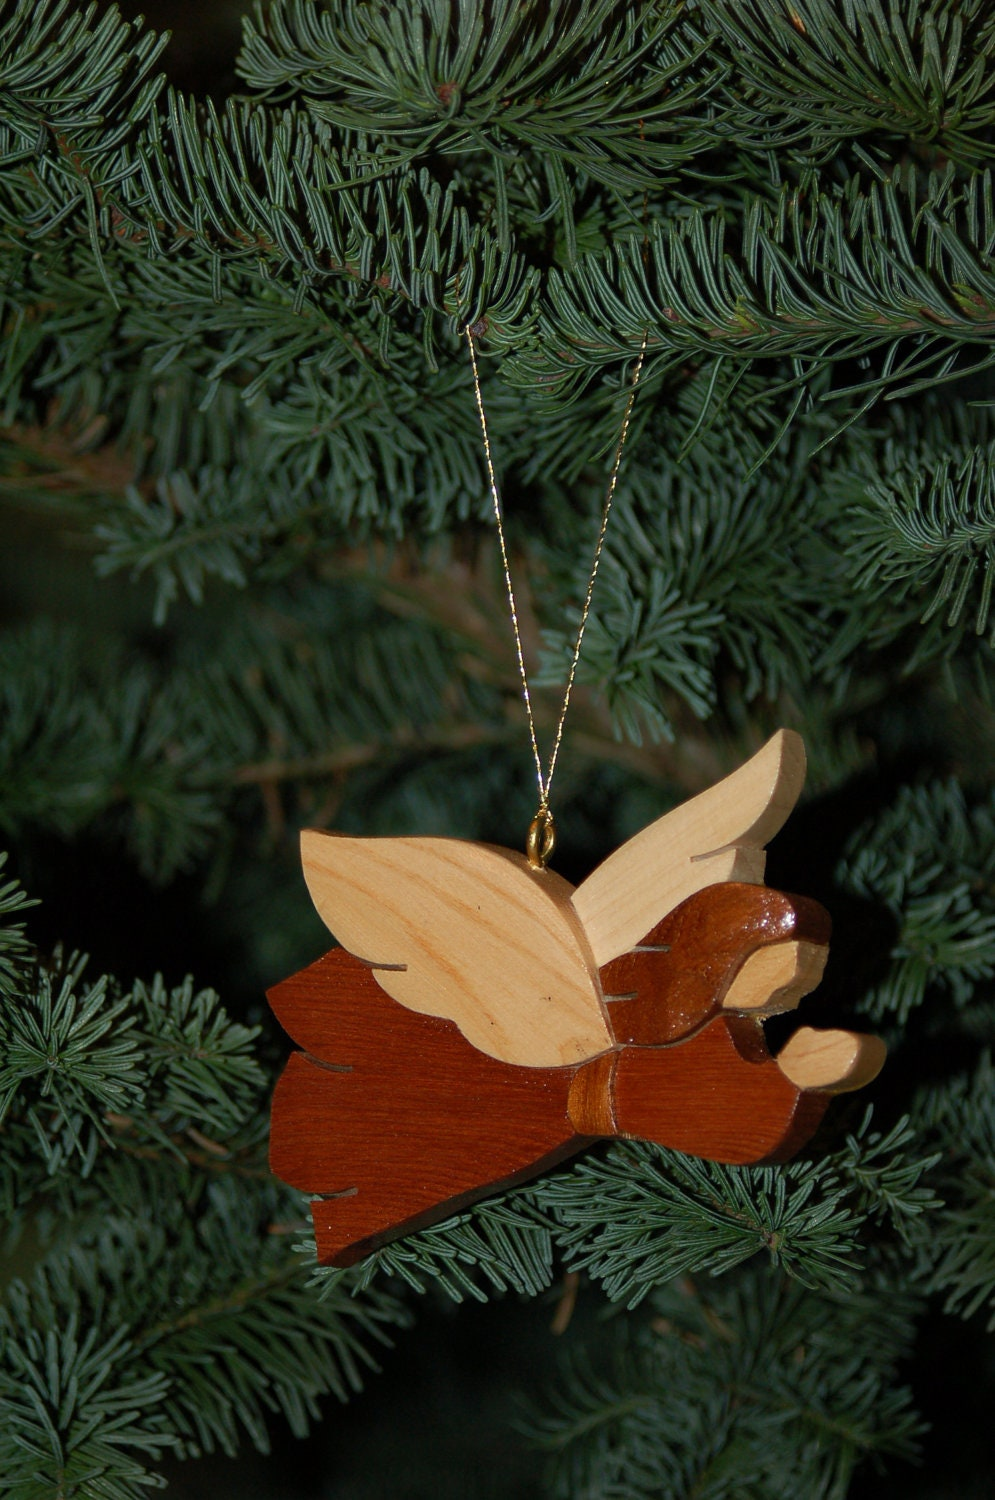 ANGEL CHRISTMAS ORNAMENT Wood Carving. A meaningful symbol